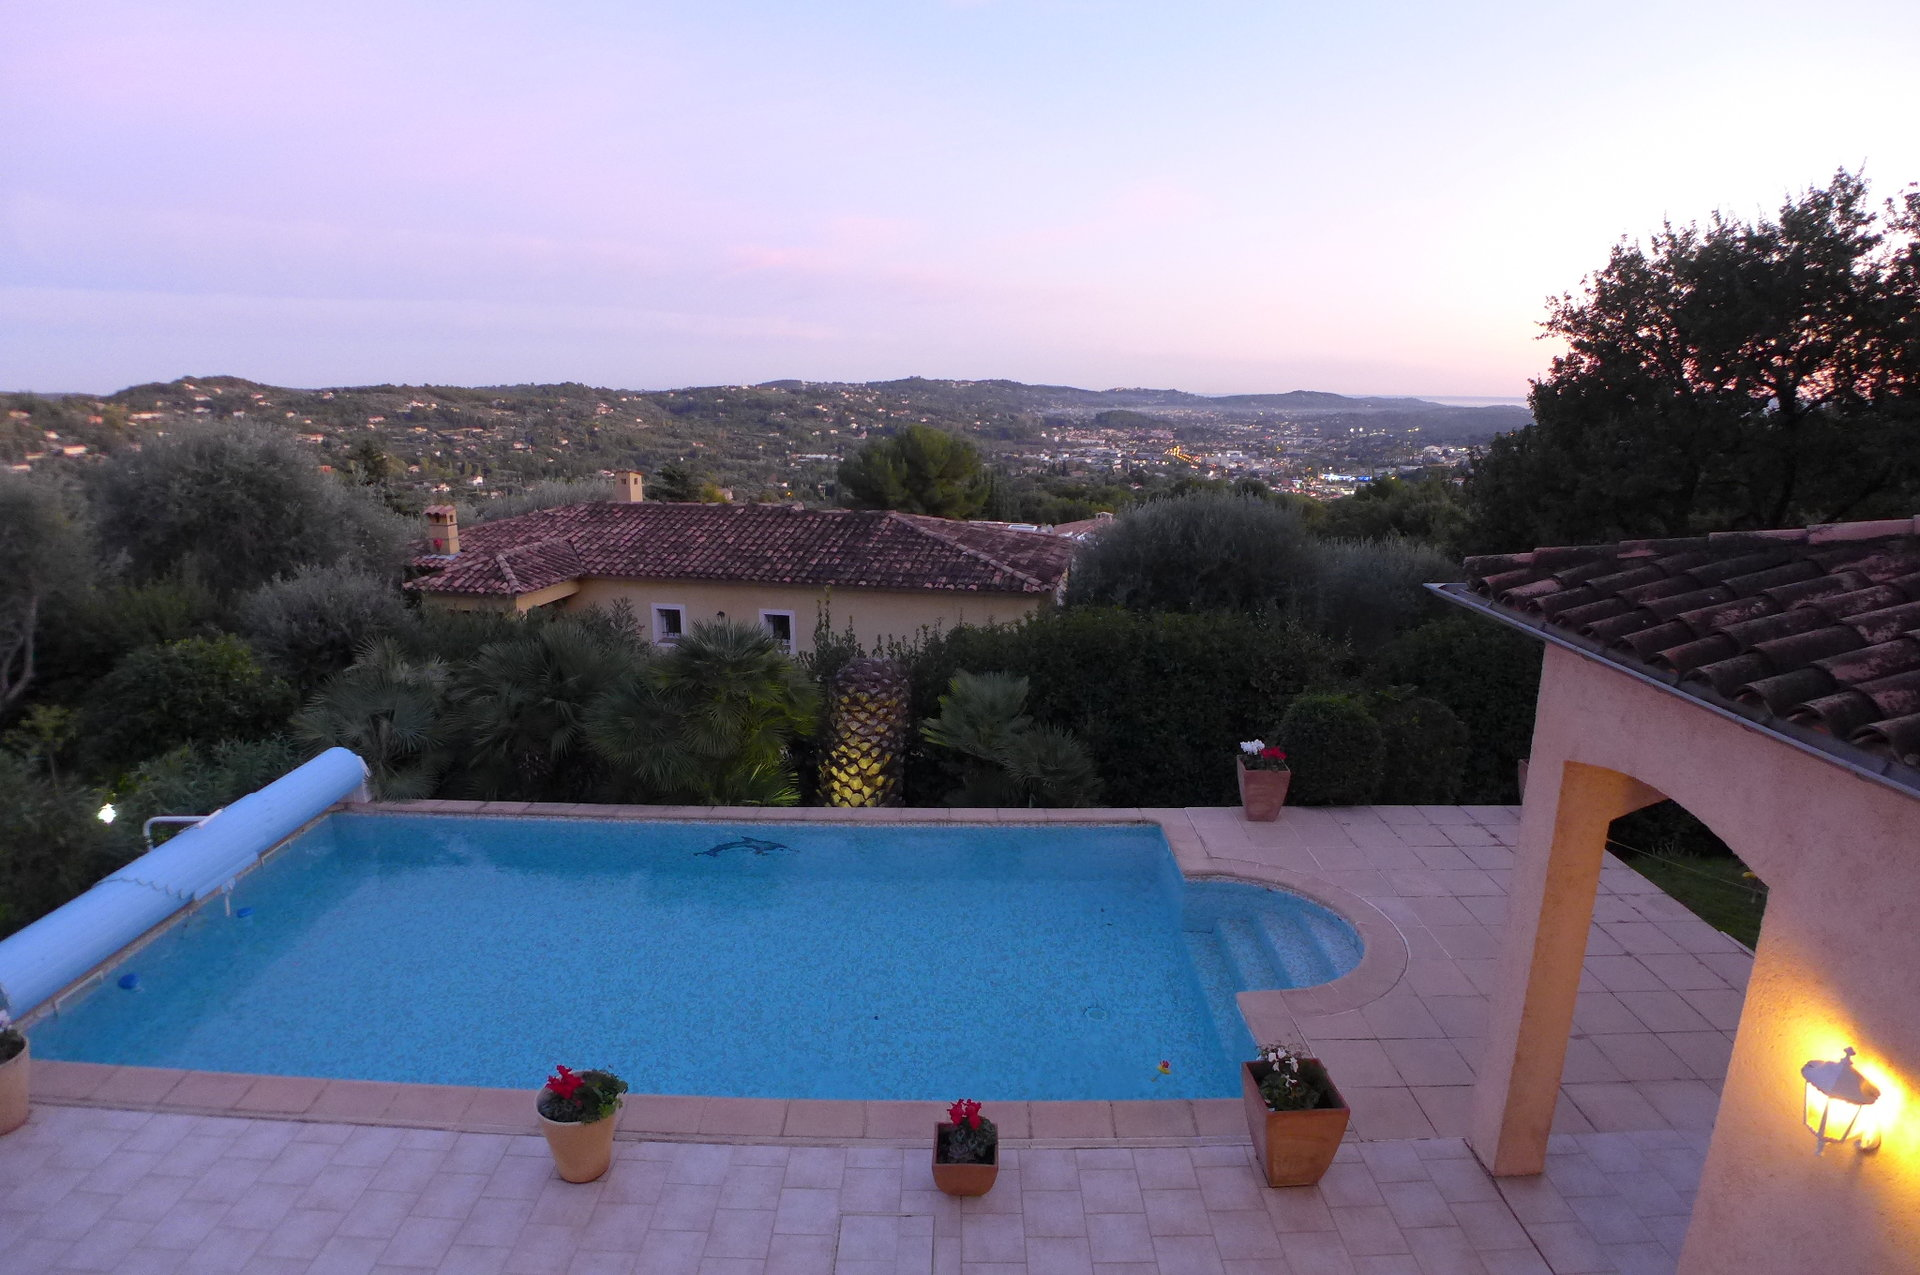 Grasse Saint-Jean: A lovely 3-1/2 bedroom family home